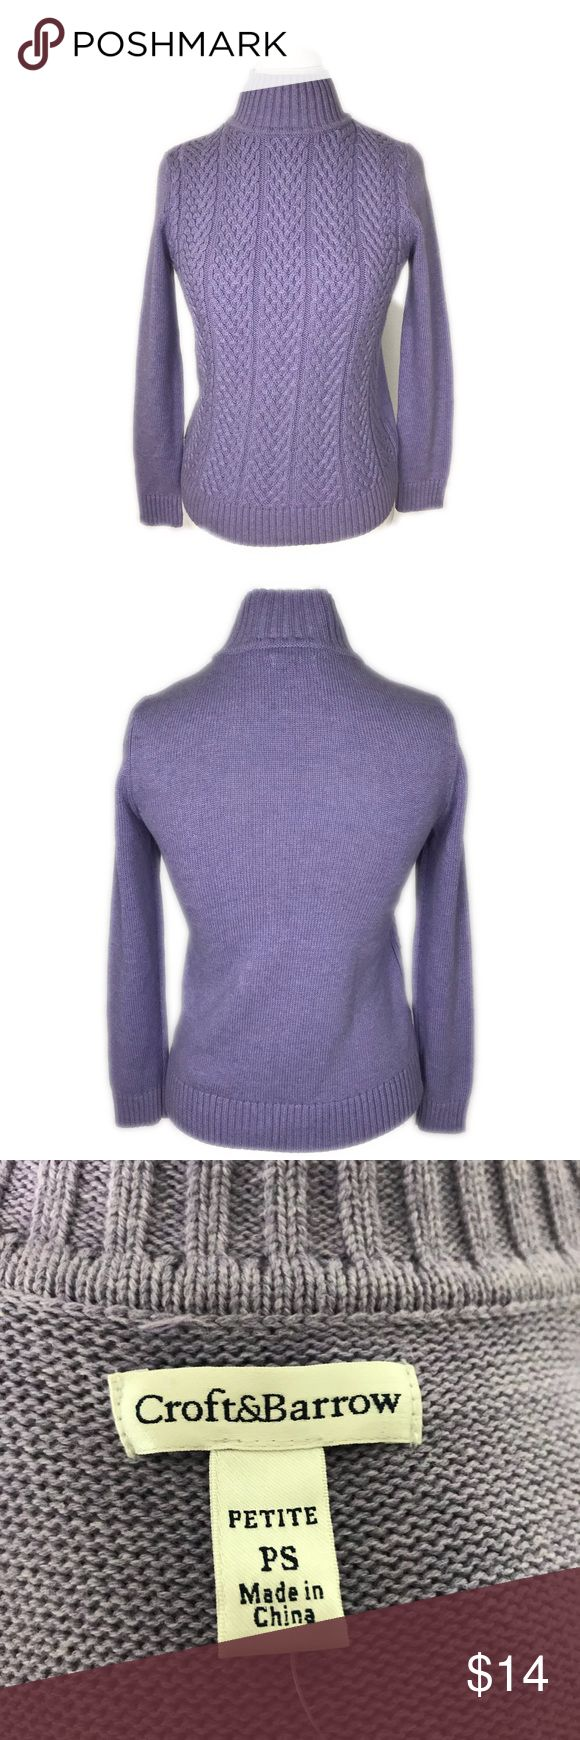 Best 25  Purple sweater ideas on Pinterest | Belstaff purses, What ...